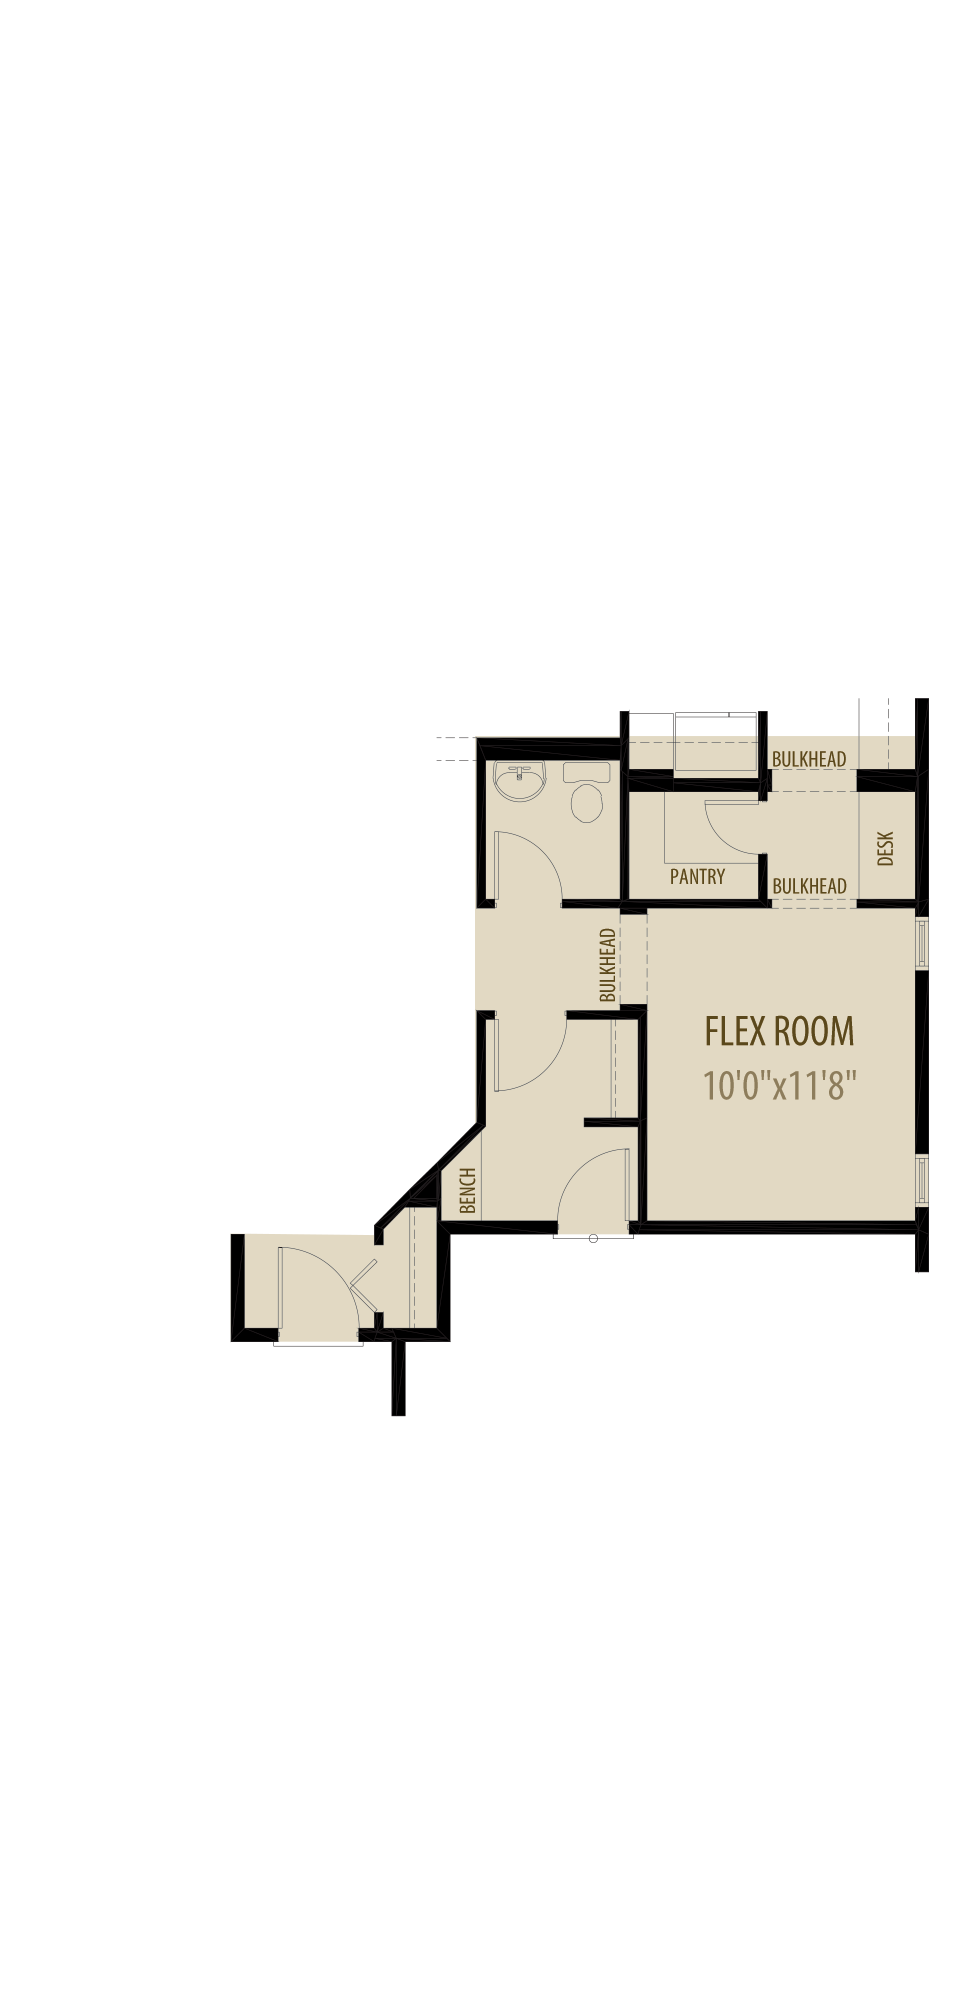 Option 2 Flex Room Adds 165Sq Ft